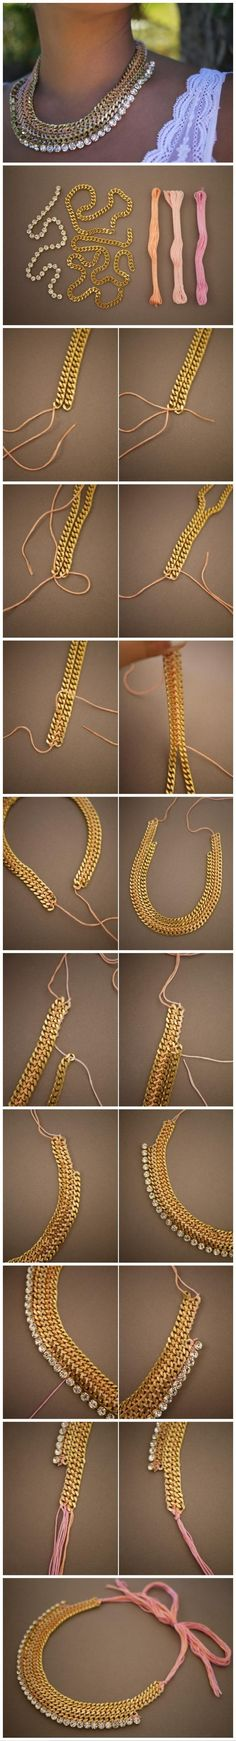 DIY Necklace - Tutorial